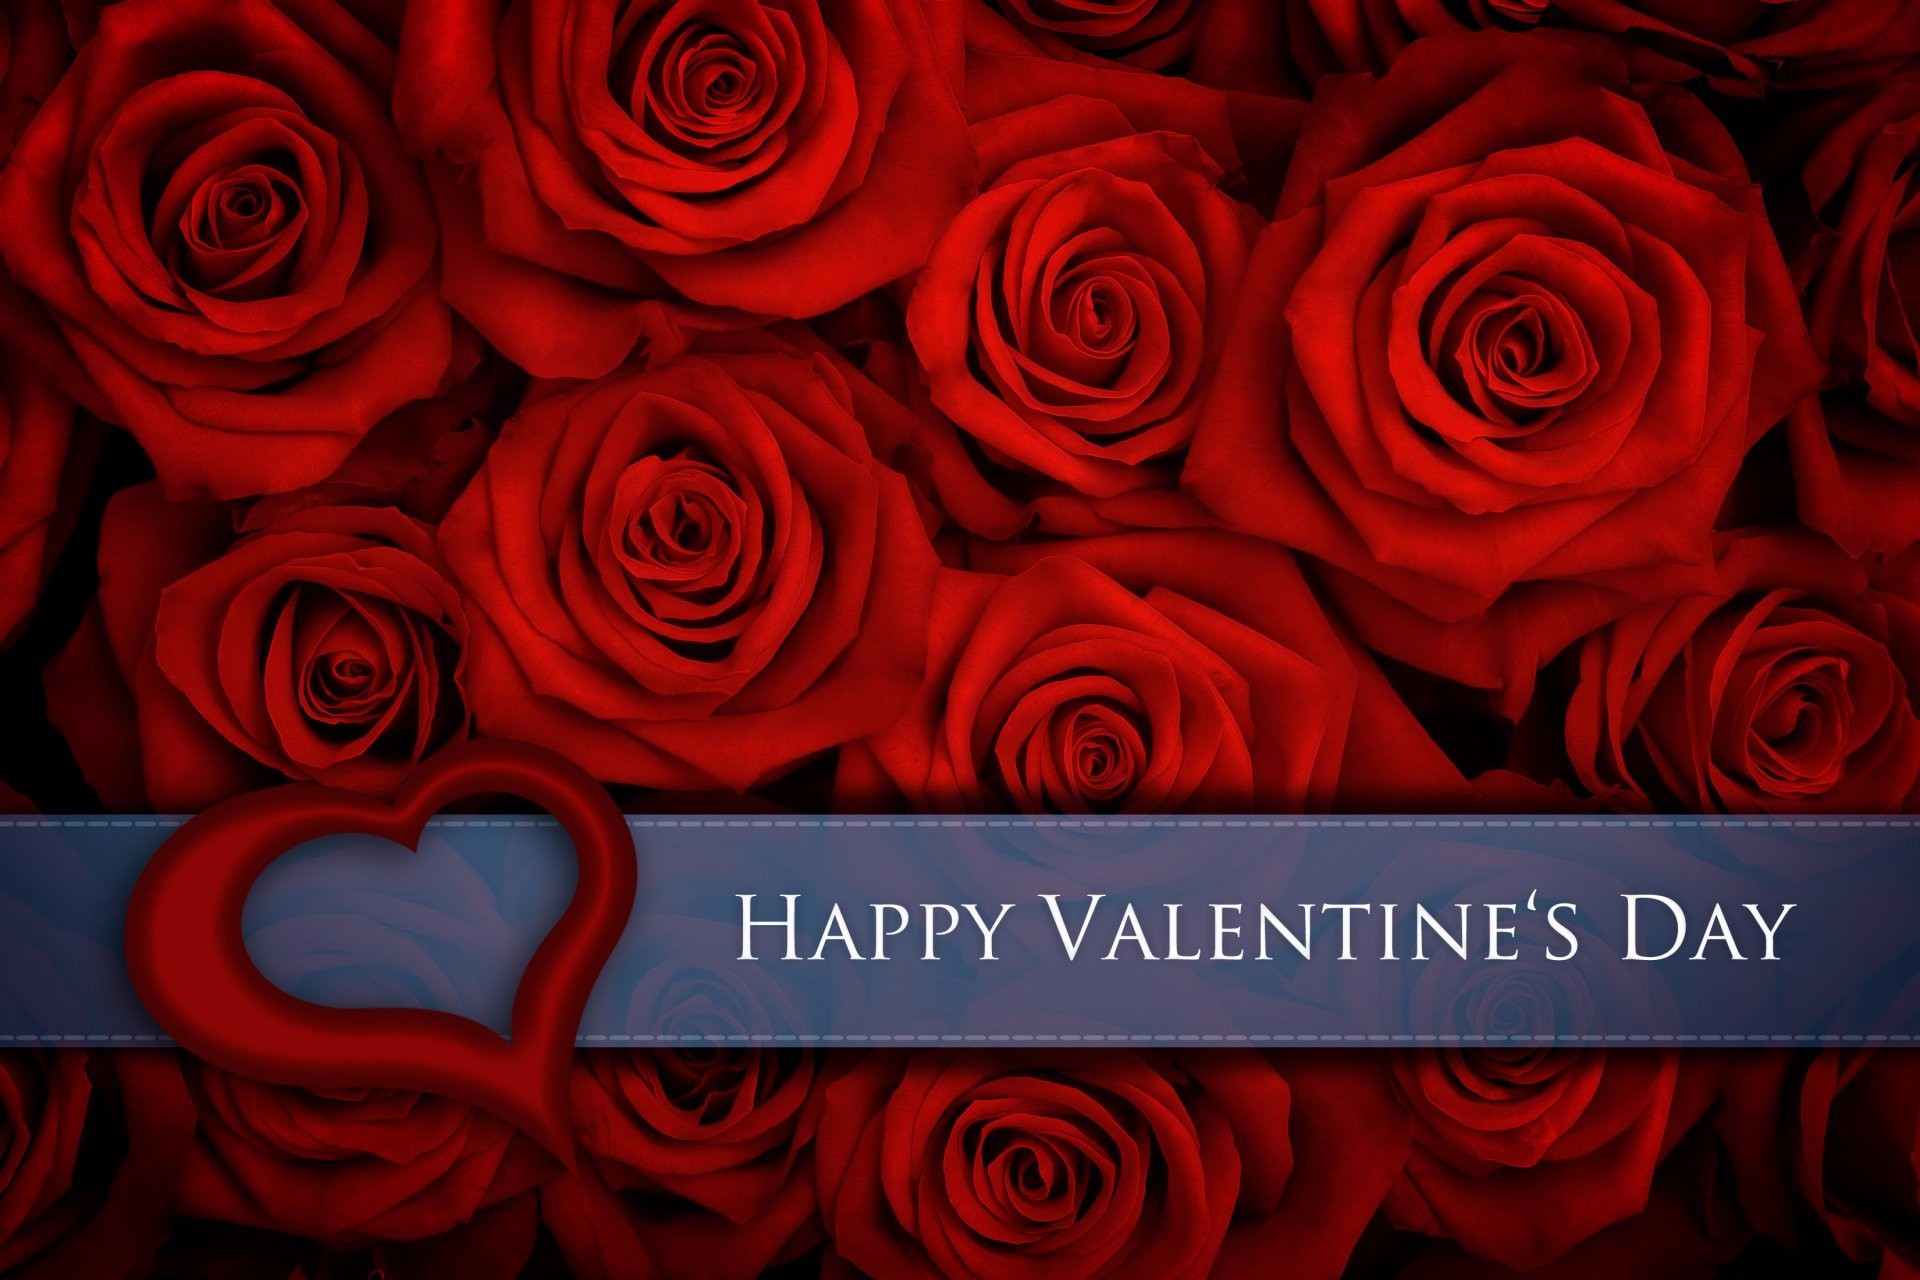 Valentine 39 s day hd wallpaper background image - Valentine s day flower wallpaper ...